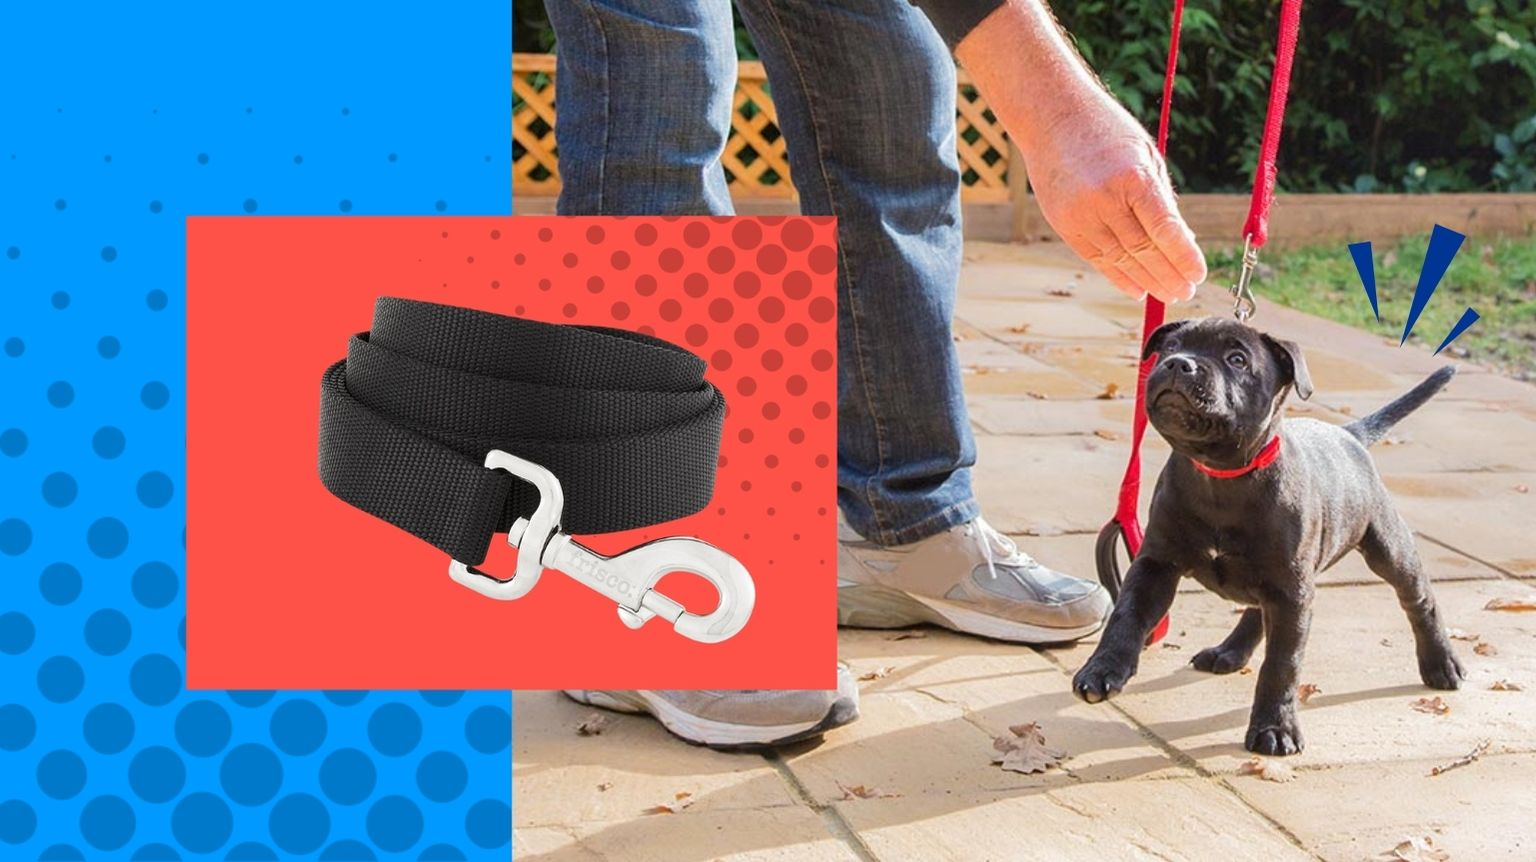 Staffordshire Bull Terrier puppy being trained on a leash